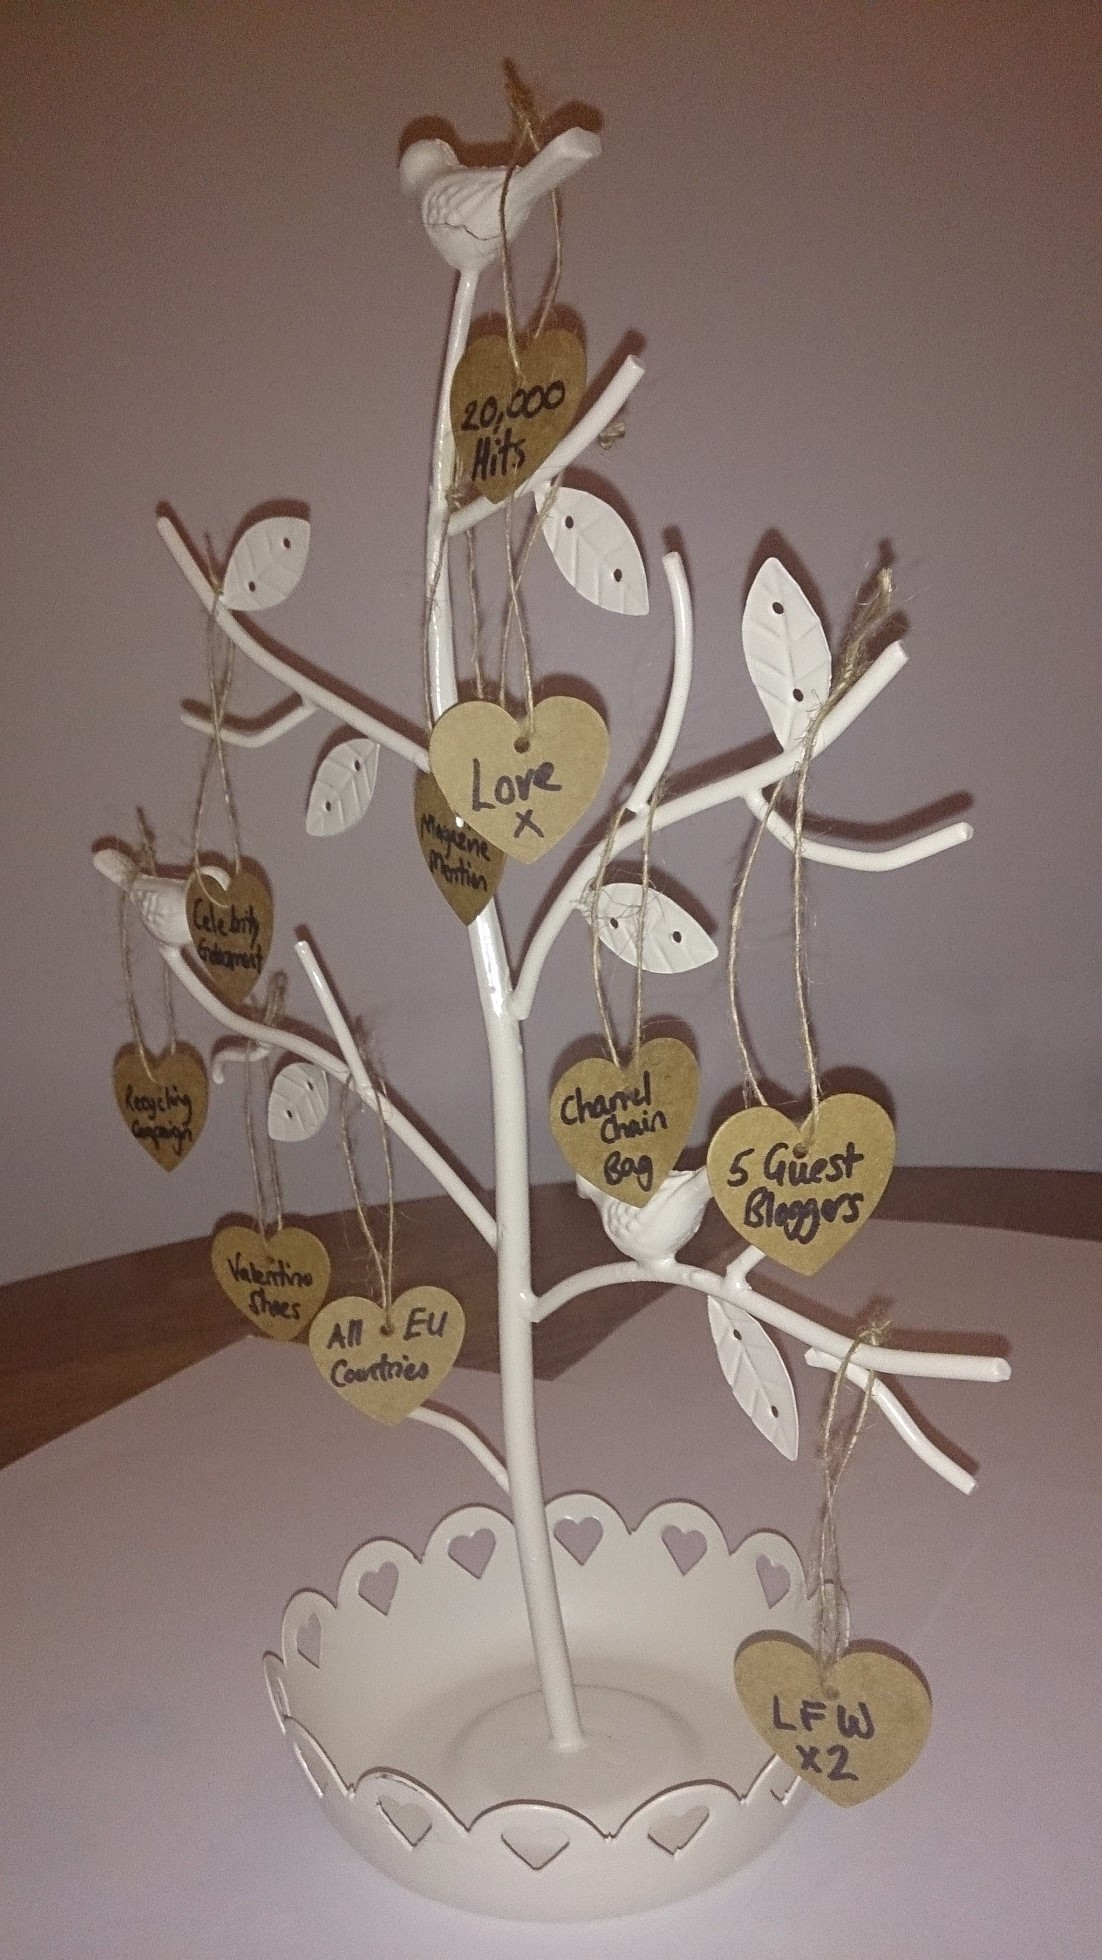 The 2014 Wish Tree